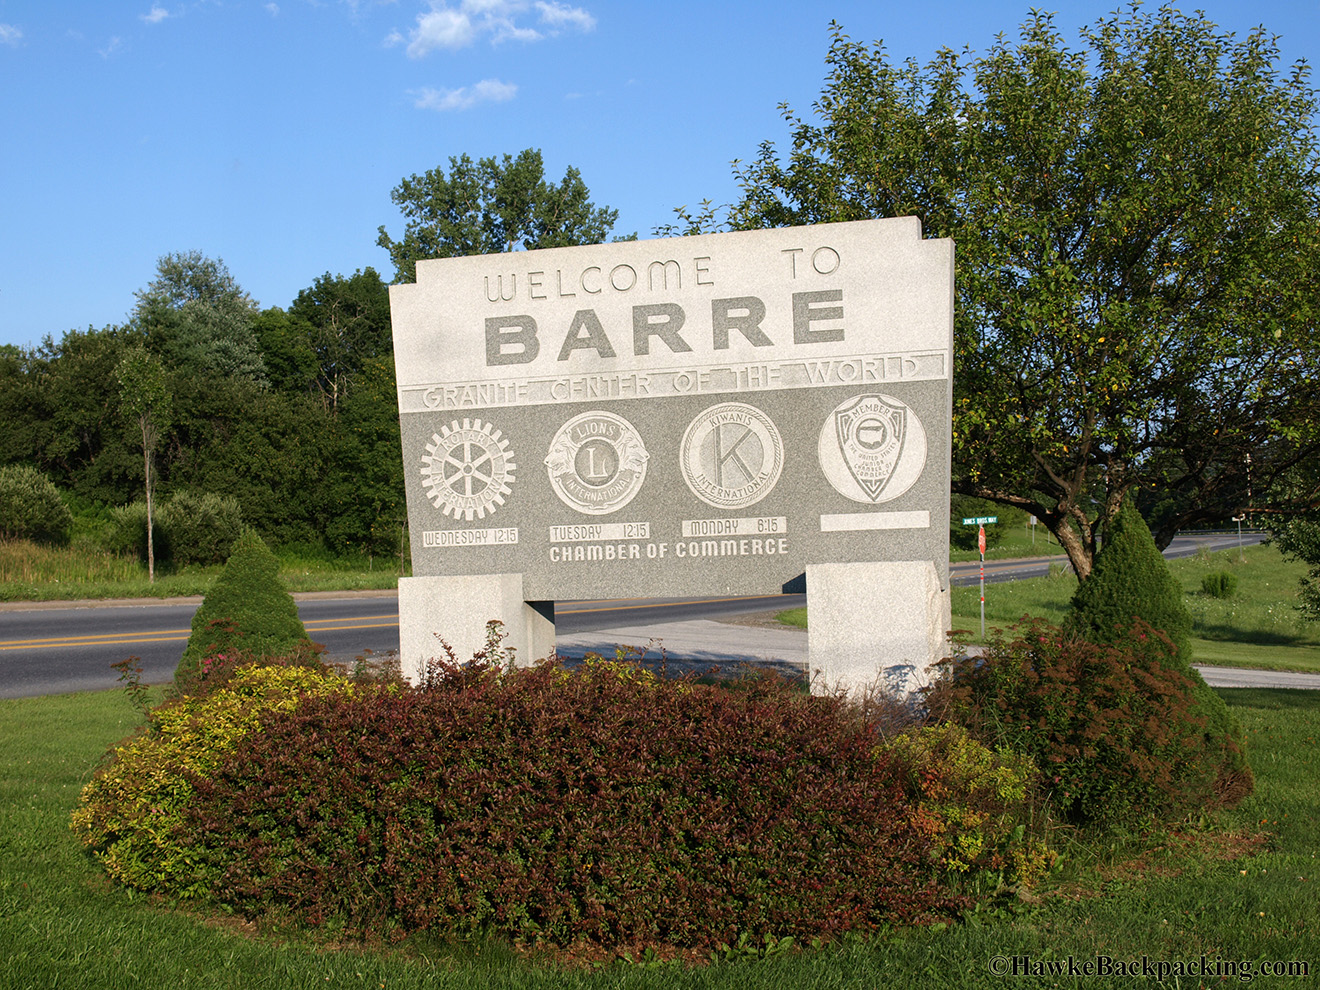 Barre (VT) United States  city photo : Barre HawkeBackpacking.com